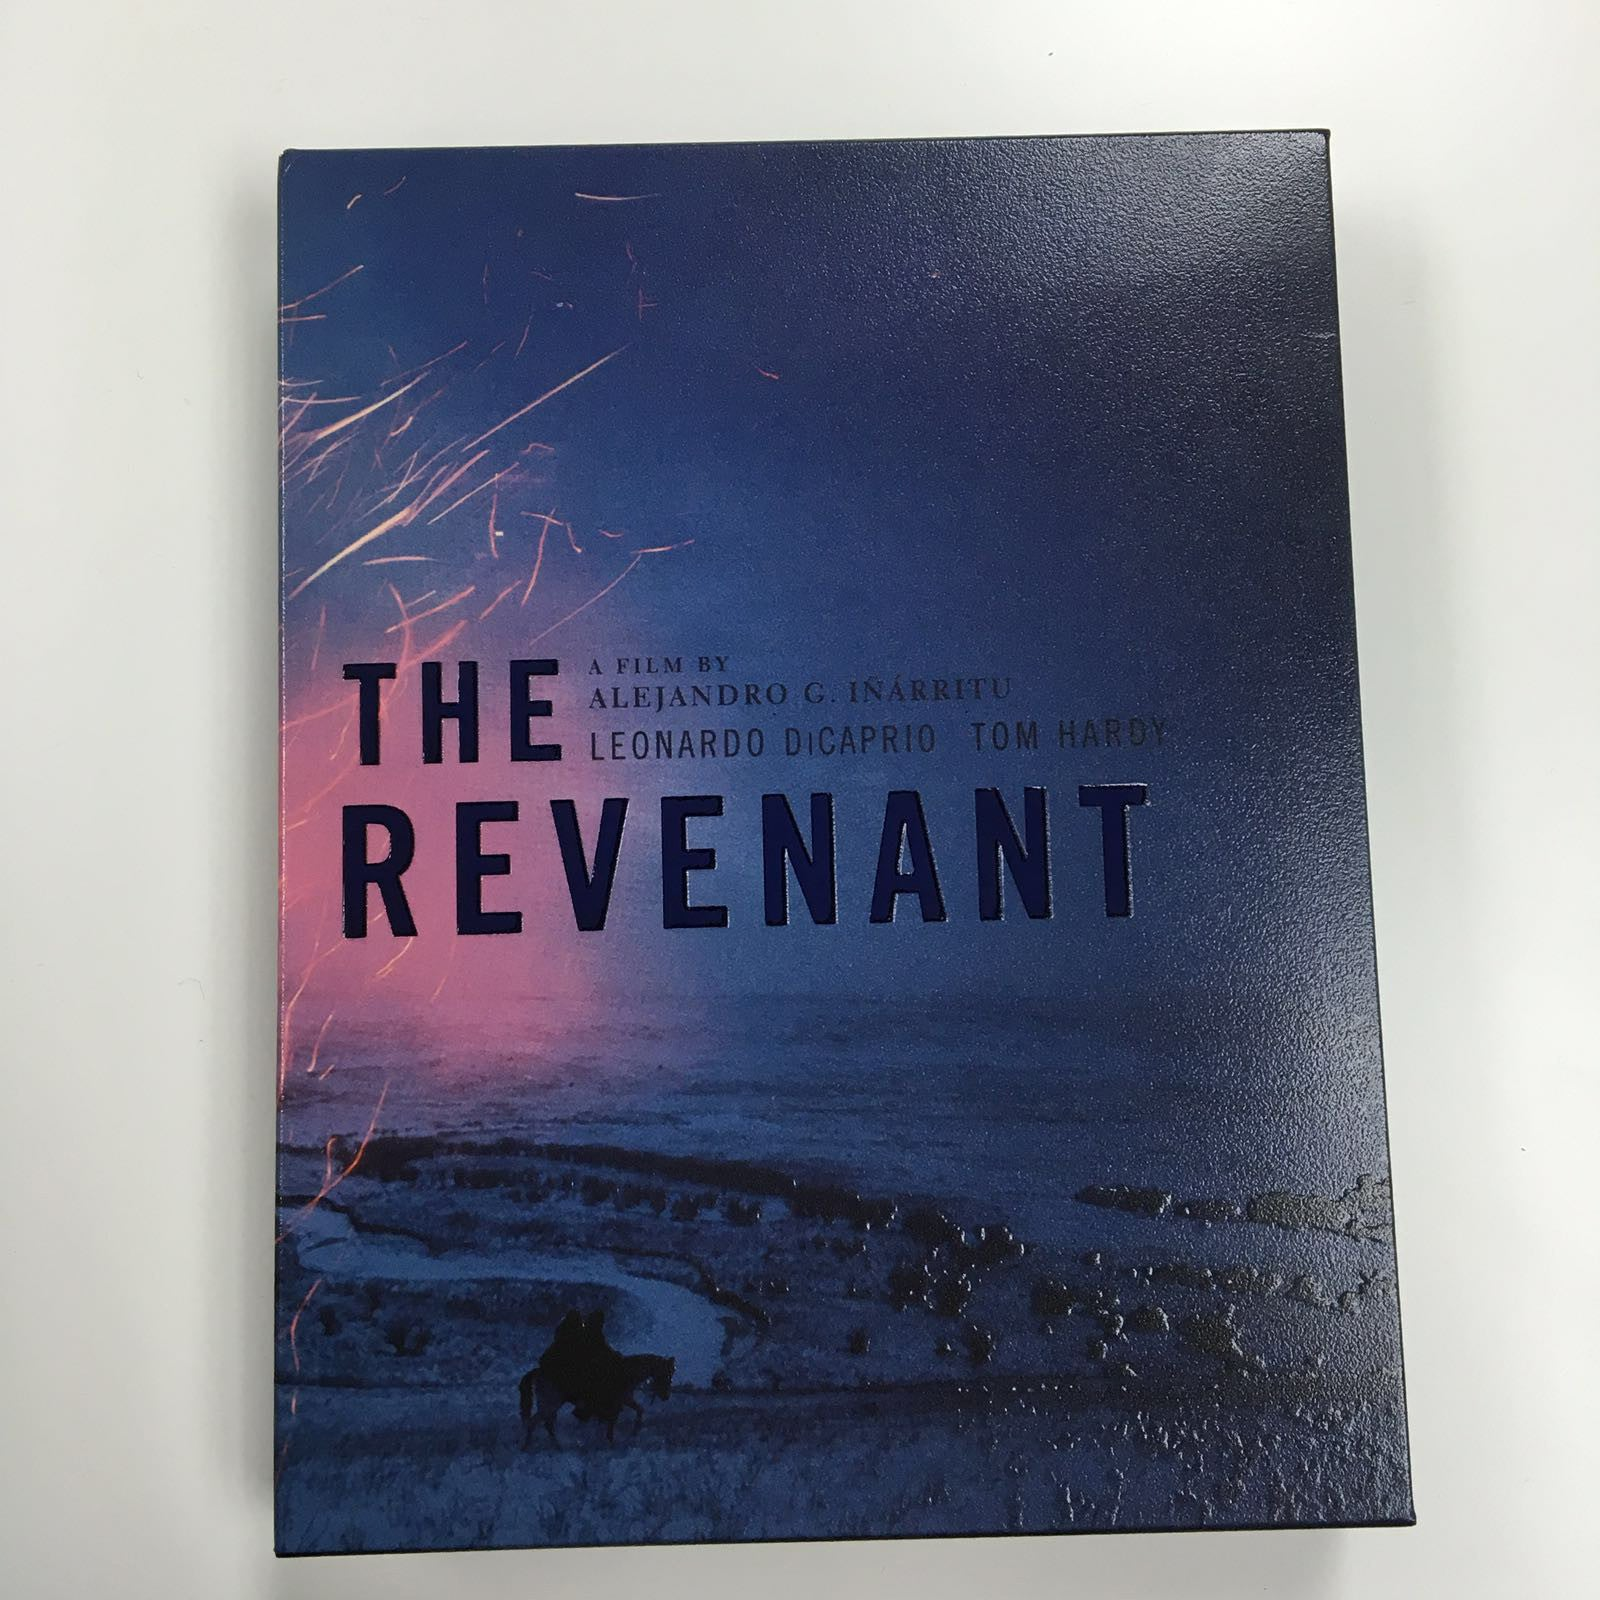 Manta Lab Exclusive Steelbook #002 <The Revenant> Full Slip live pics!